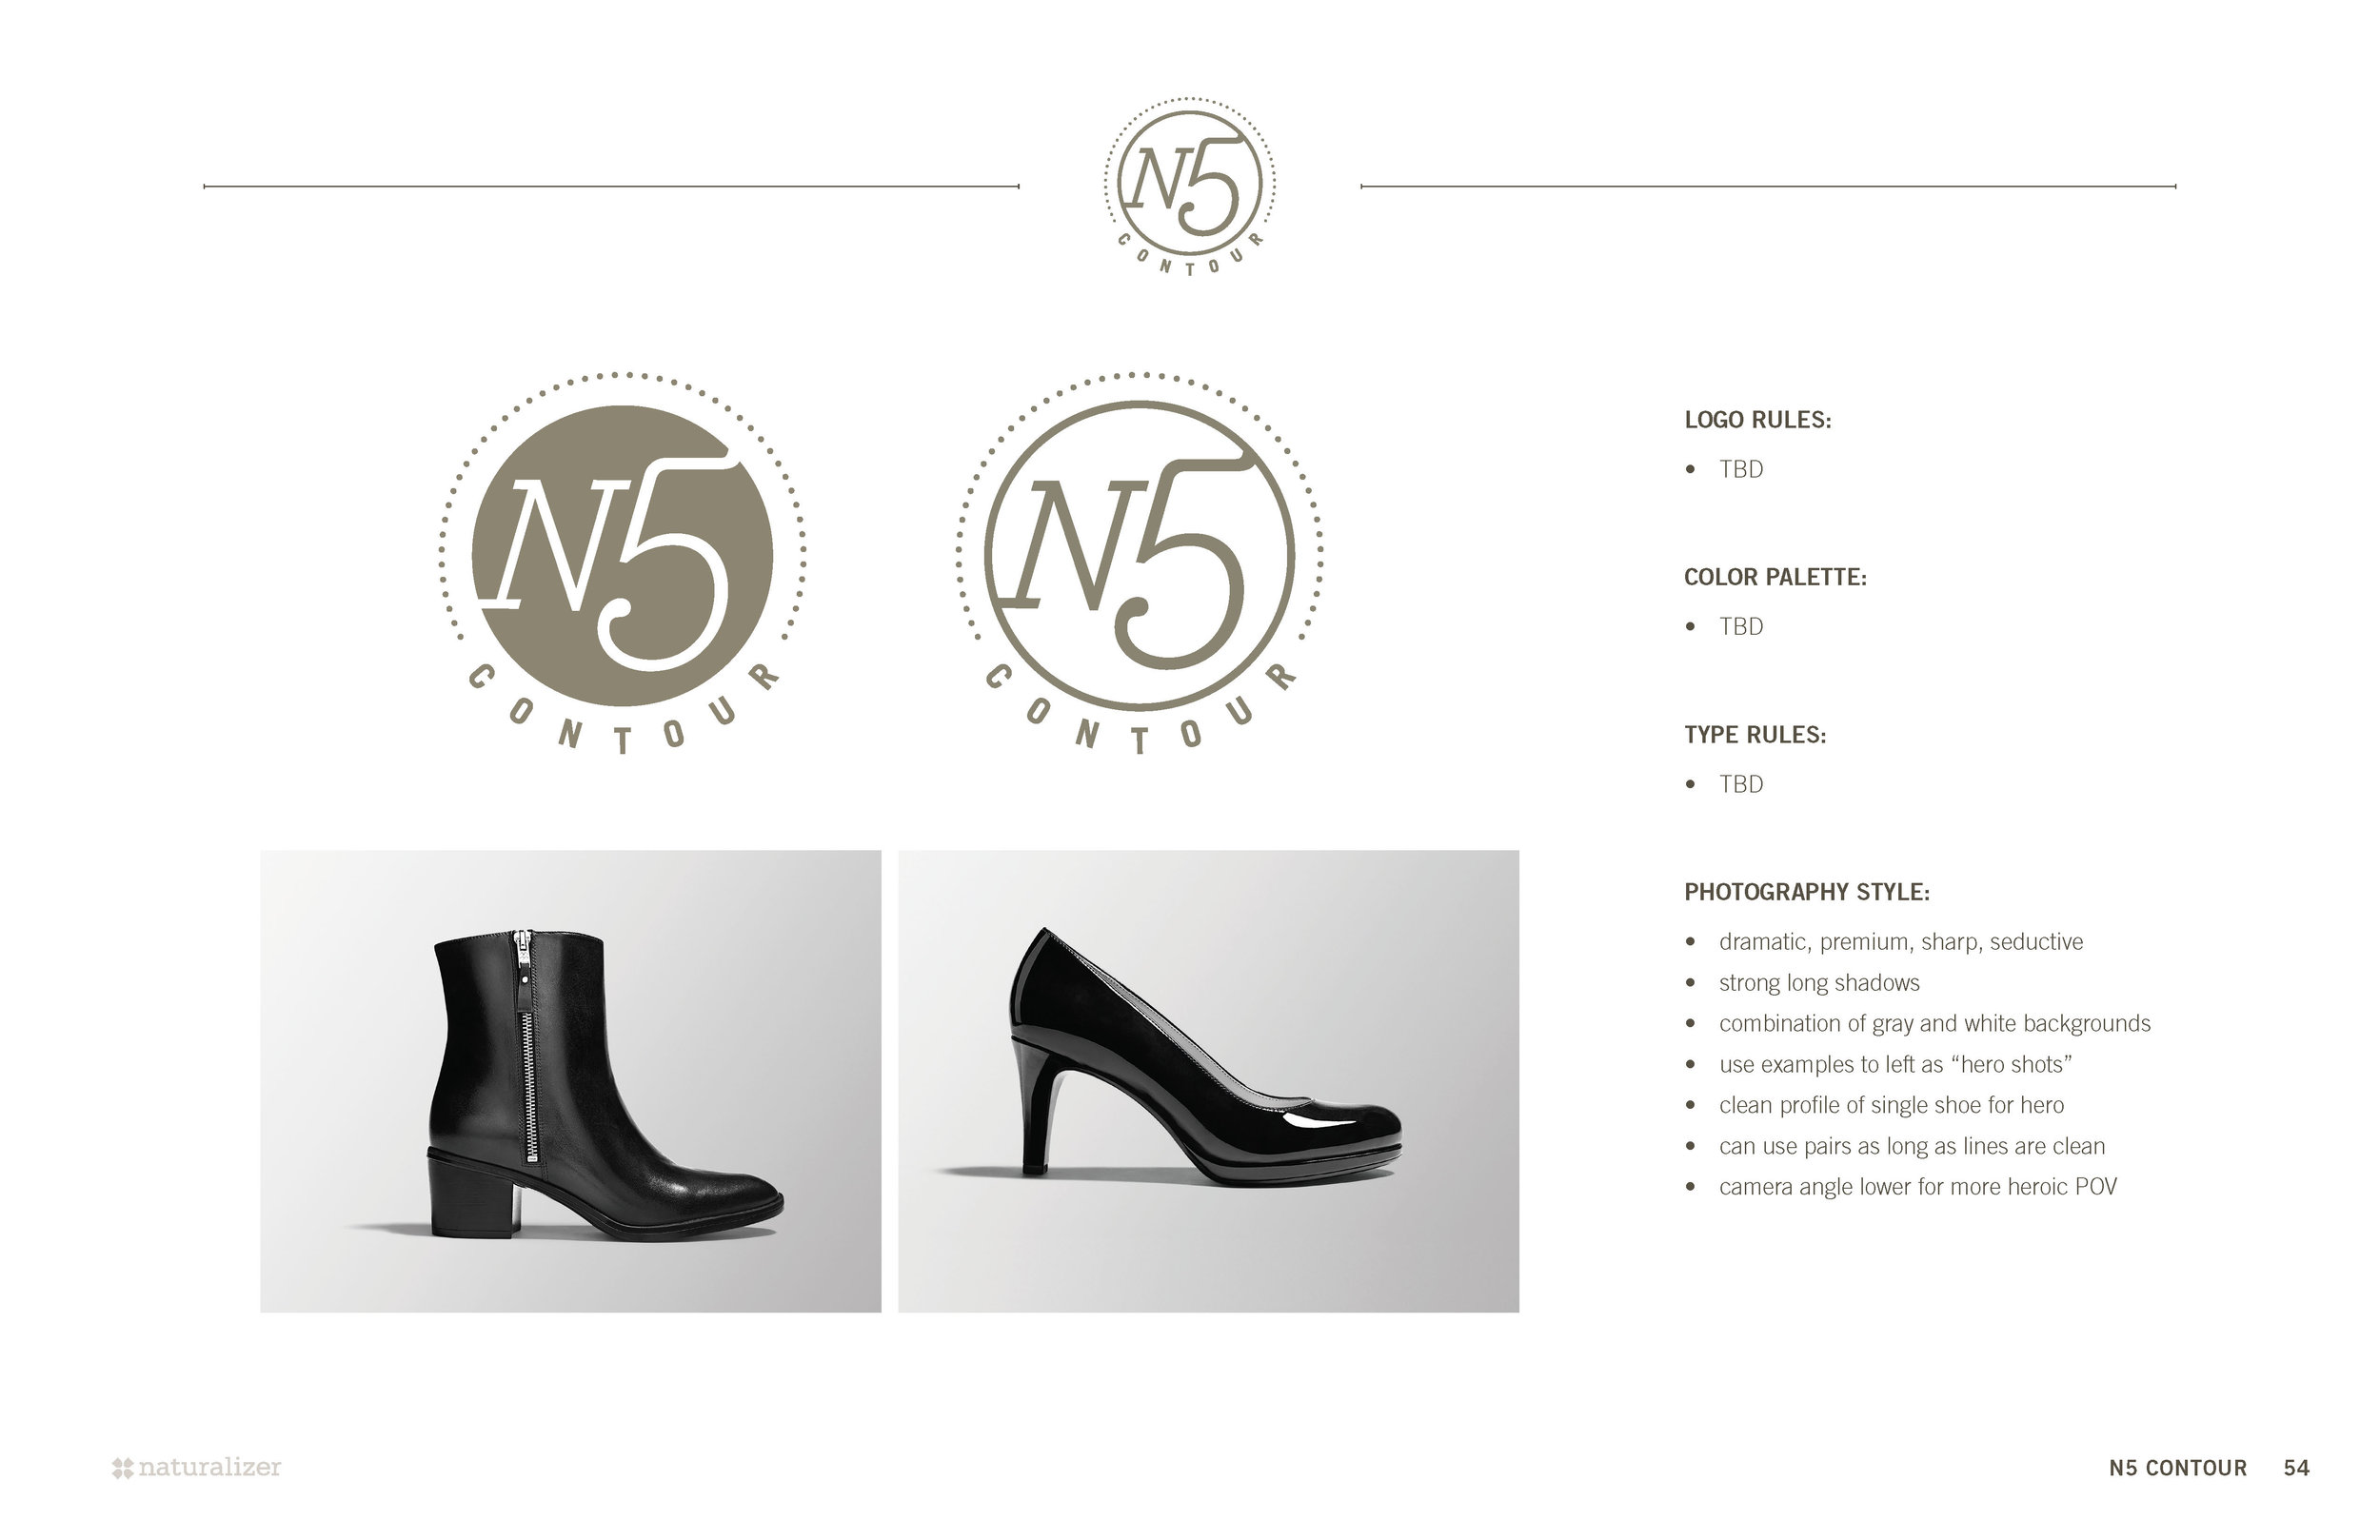 NATFW15 STYLE GUIDE CURRENT_Page_61.jpg